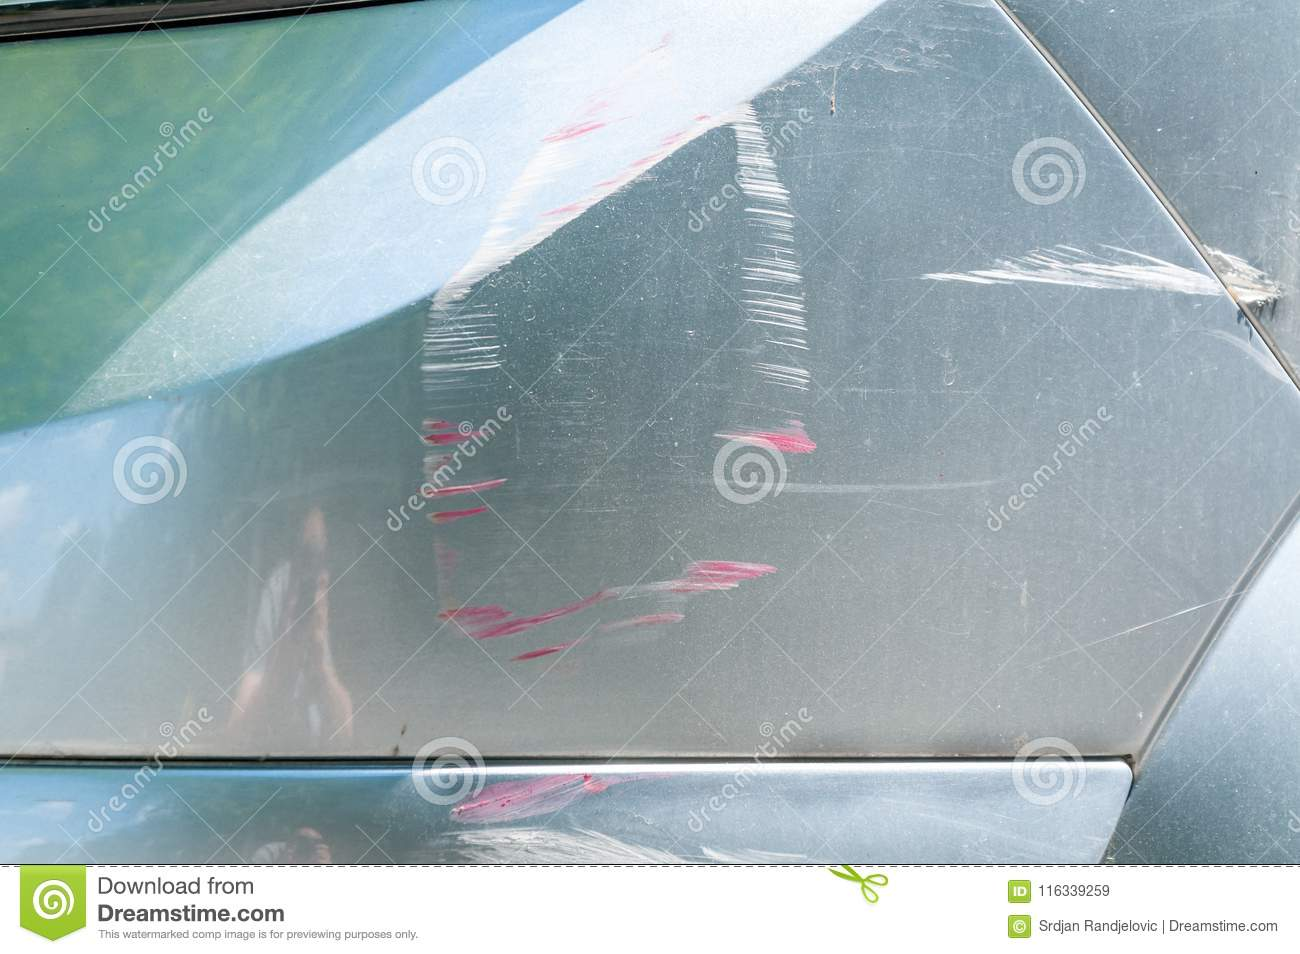 Silver car with scratched paint with red lines of other vehicle damaged in crash accident or parking lot, close up